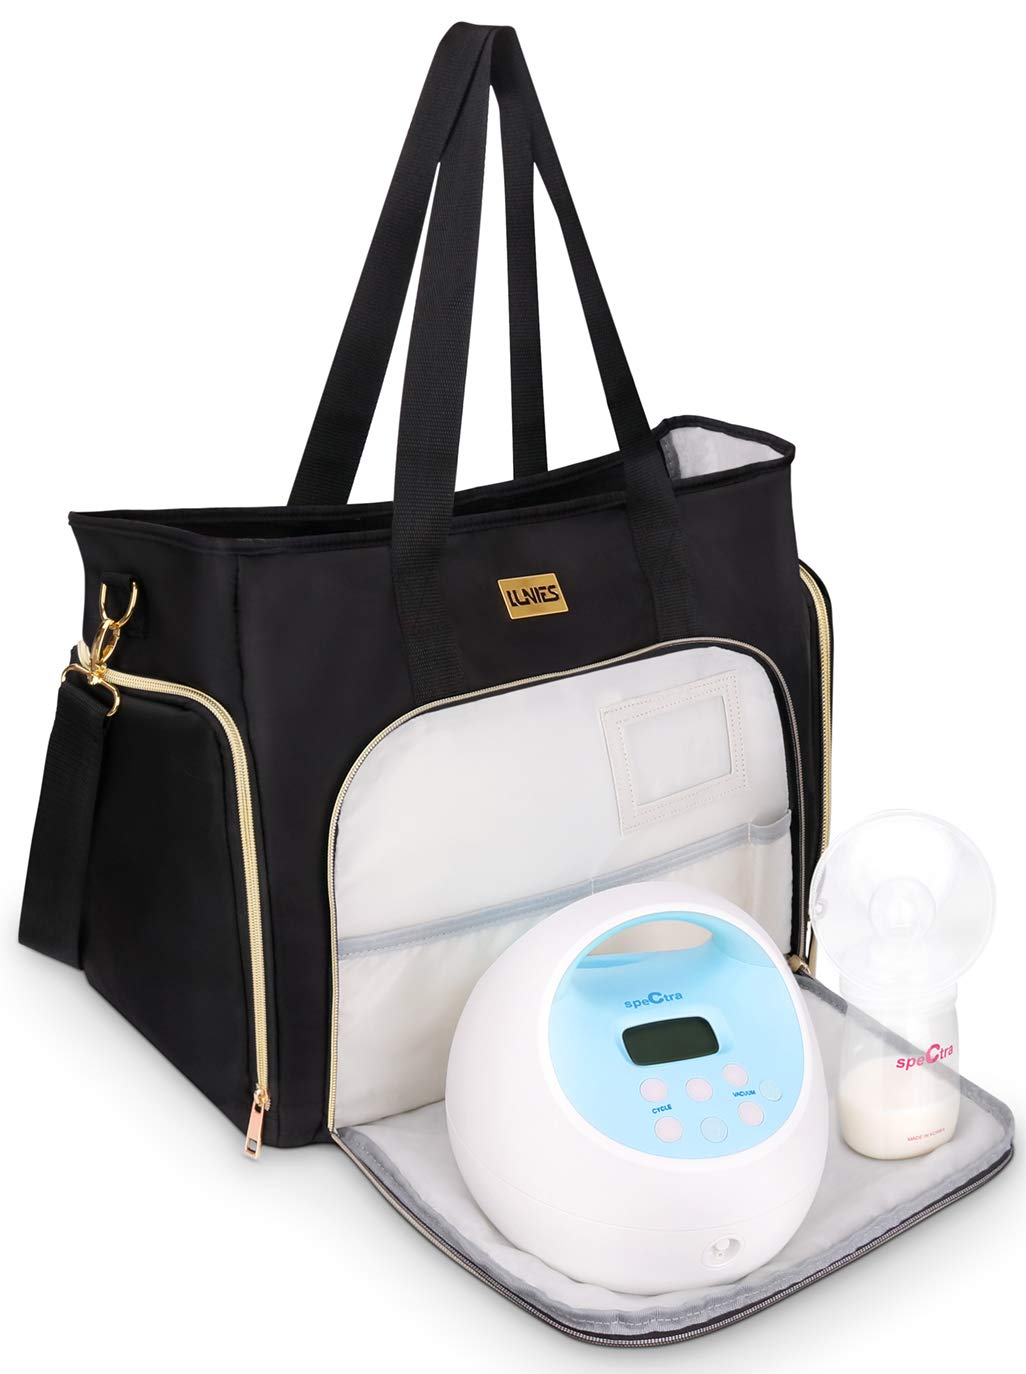 Breast Pump Bag Compatible for Spectra S1,S2,Madela,Lansinoh Electric Breast Pump - Large Capacity & Wide Open - for Mum Travel or Storage - Includes Padded Laptop Sleeve, Insulated Pockets